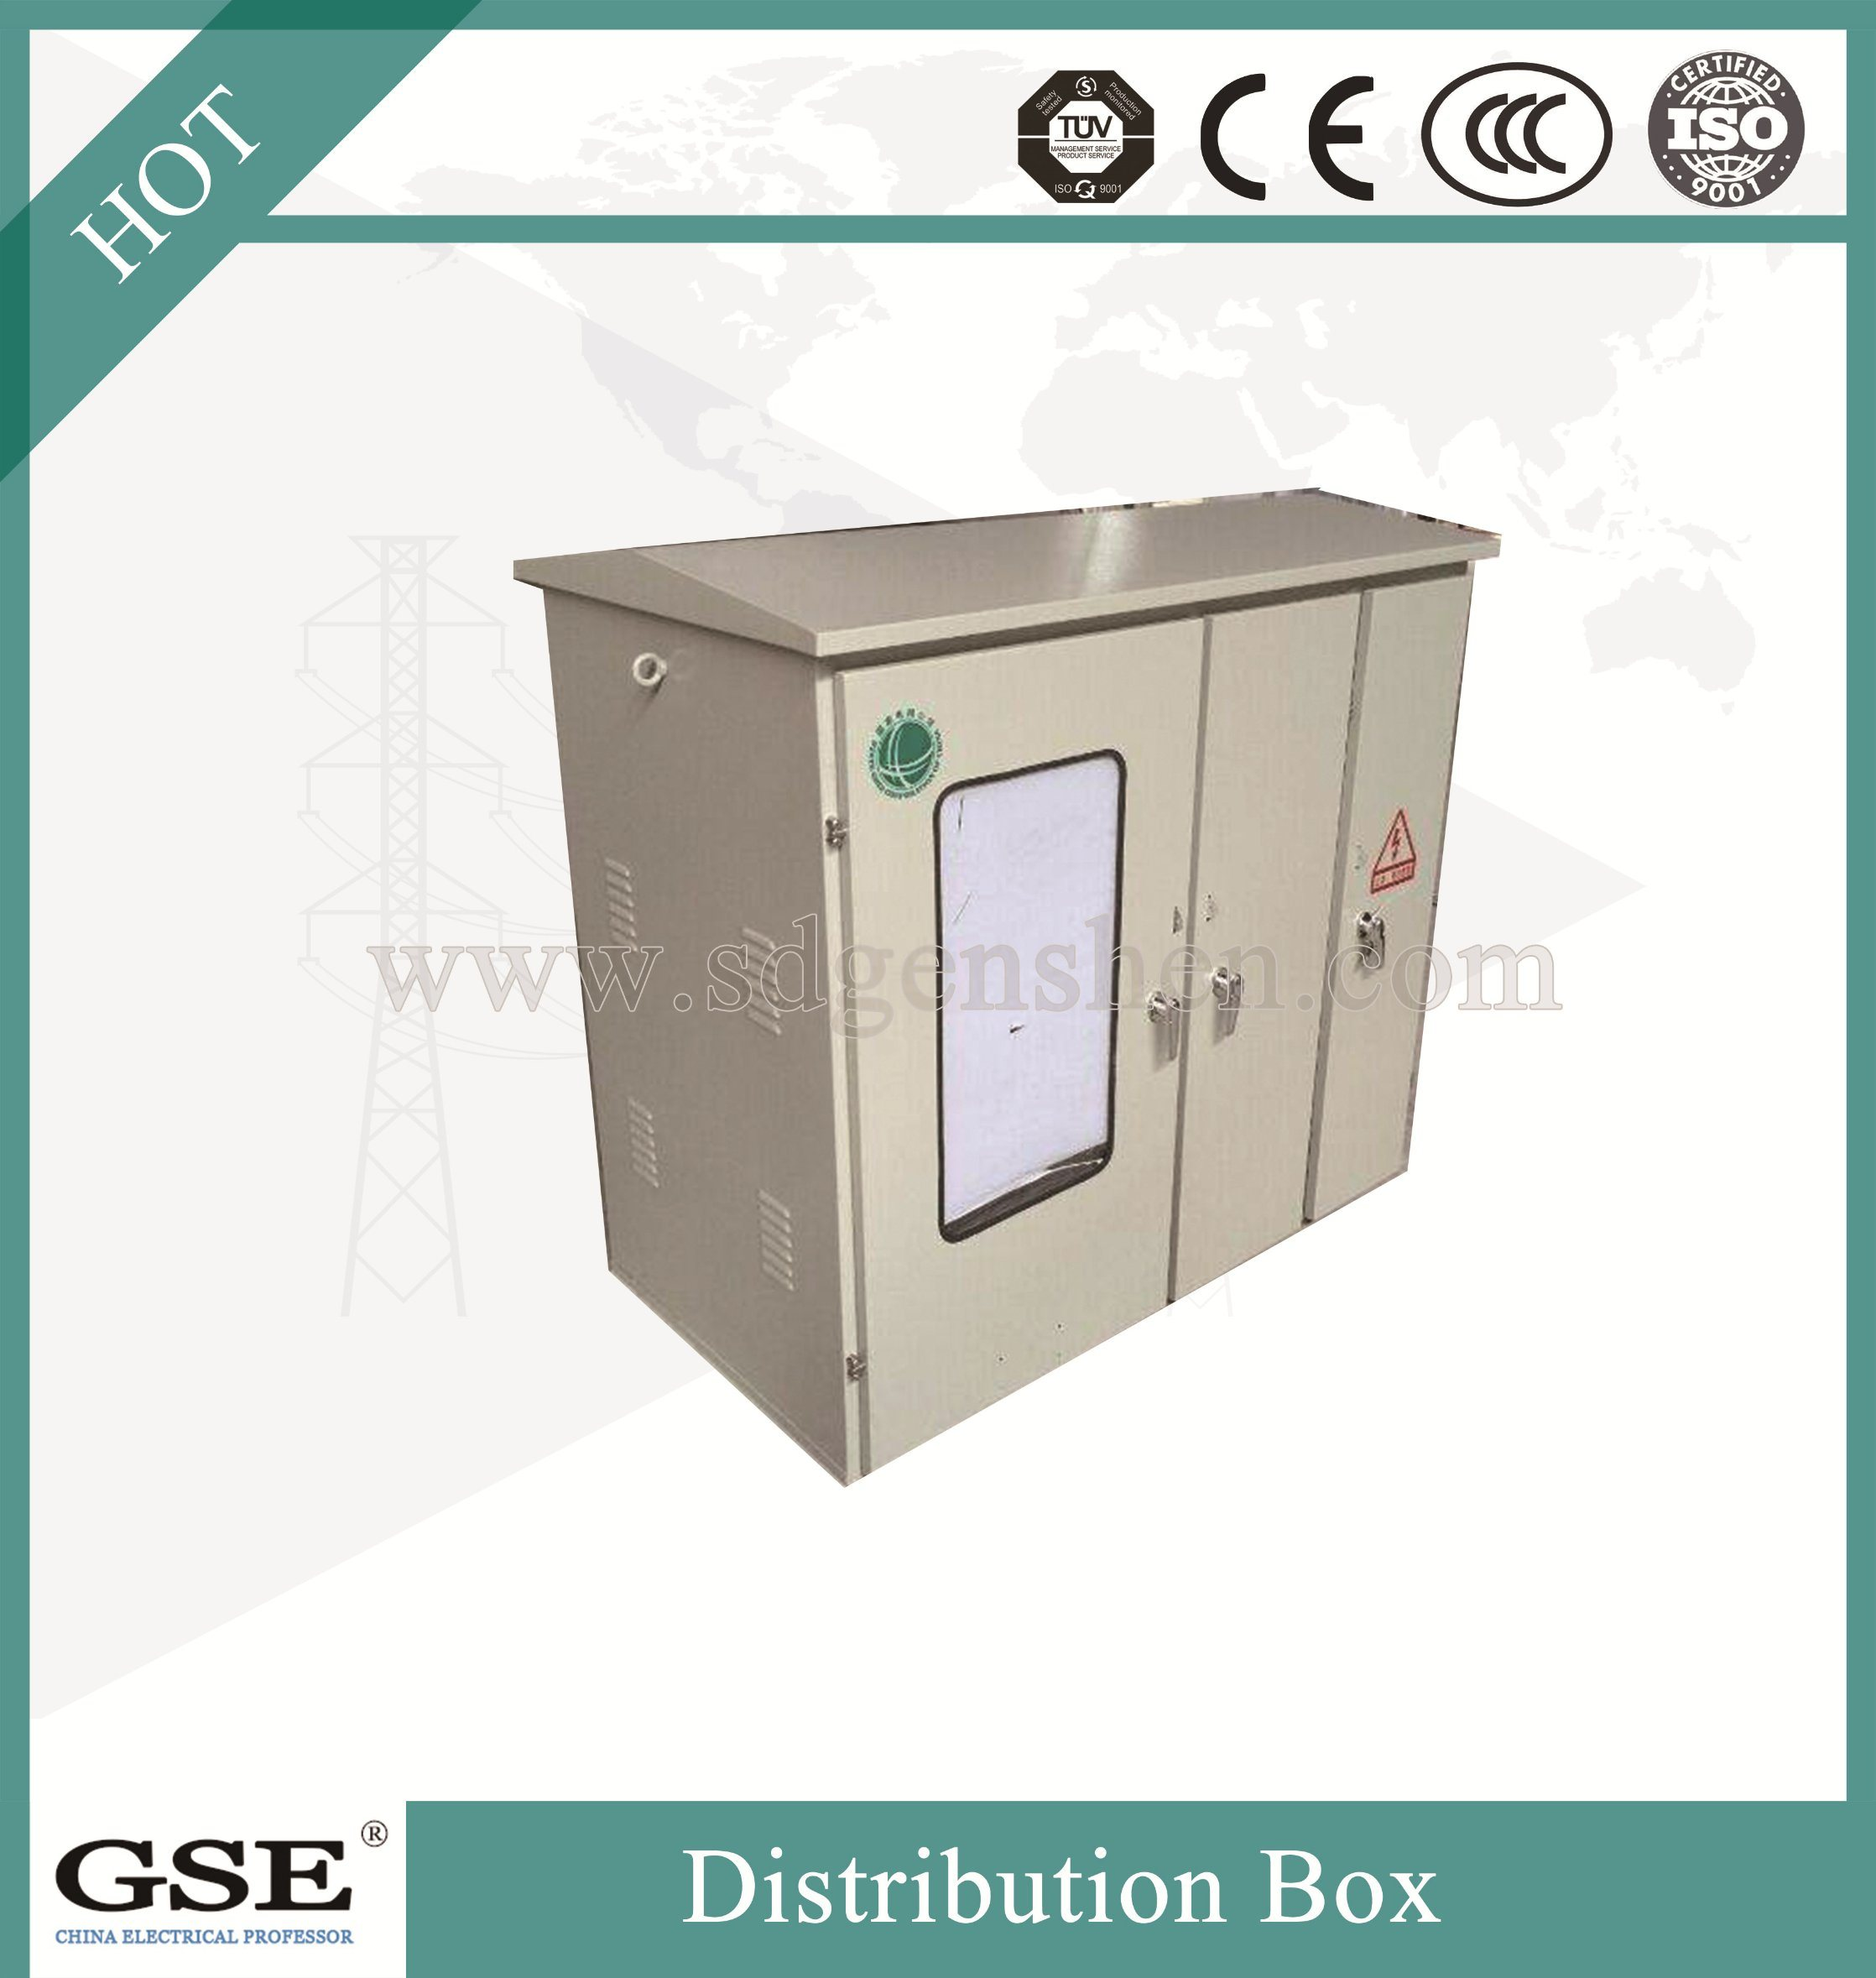 Wholesale Power Distribution Panel China Box Electrical Panels Buy Circuit Breaker Panelselectrical Manufacturers Suppliers